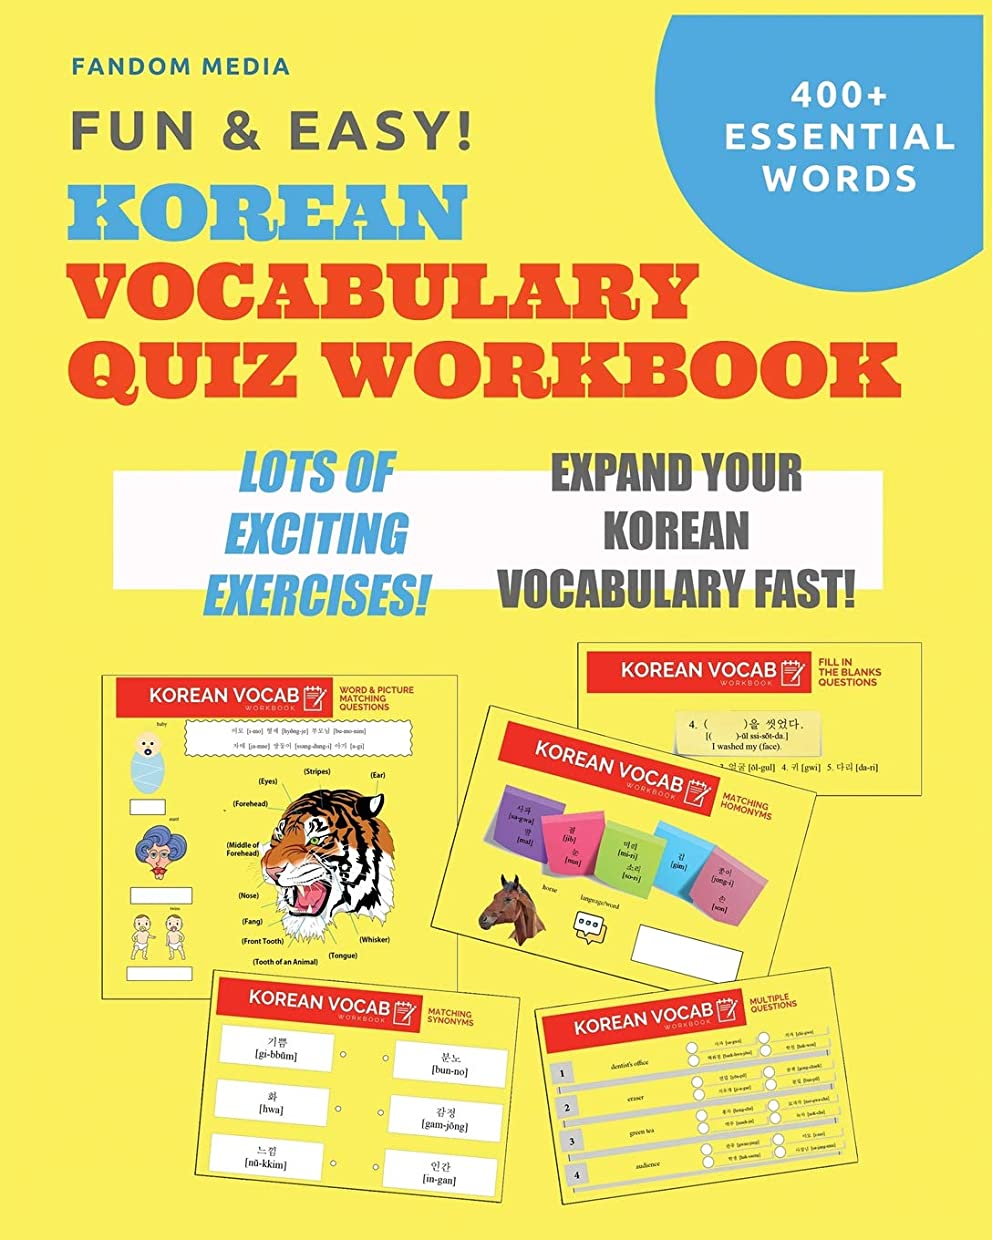 経済的洪水オーガニックFun and Easy! Korean Vocabulary Quiz Workbook: Learn Over 400 Korean Words With Exciting Practice Exercises